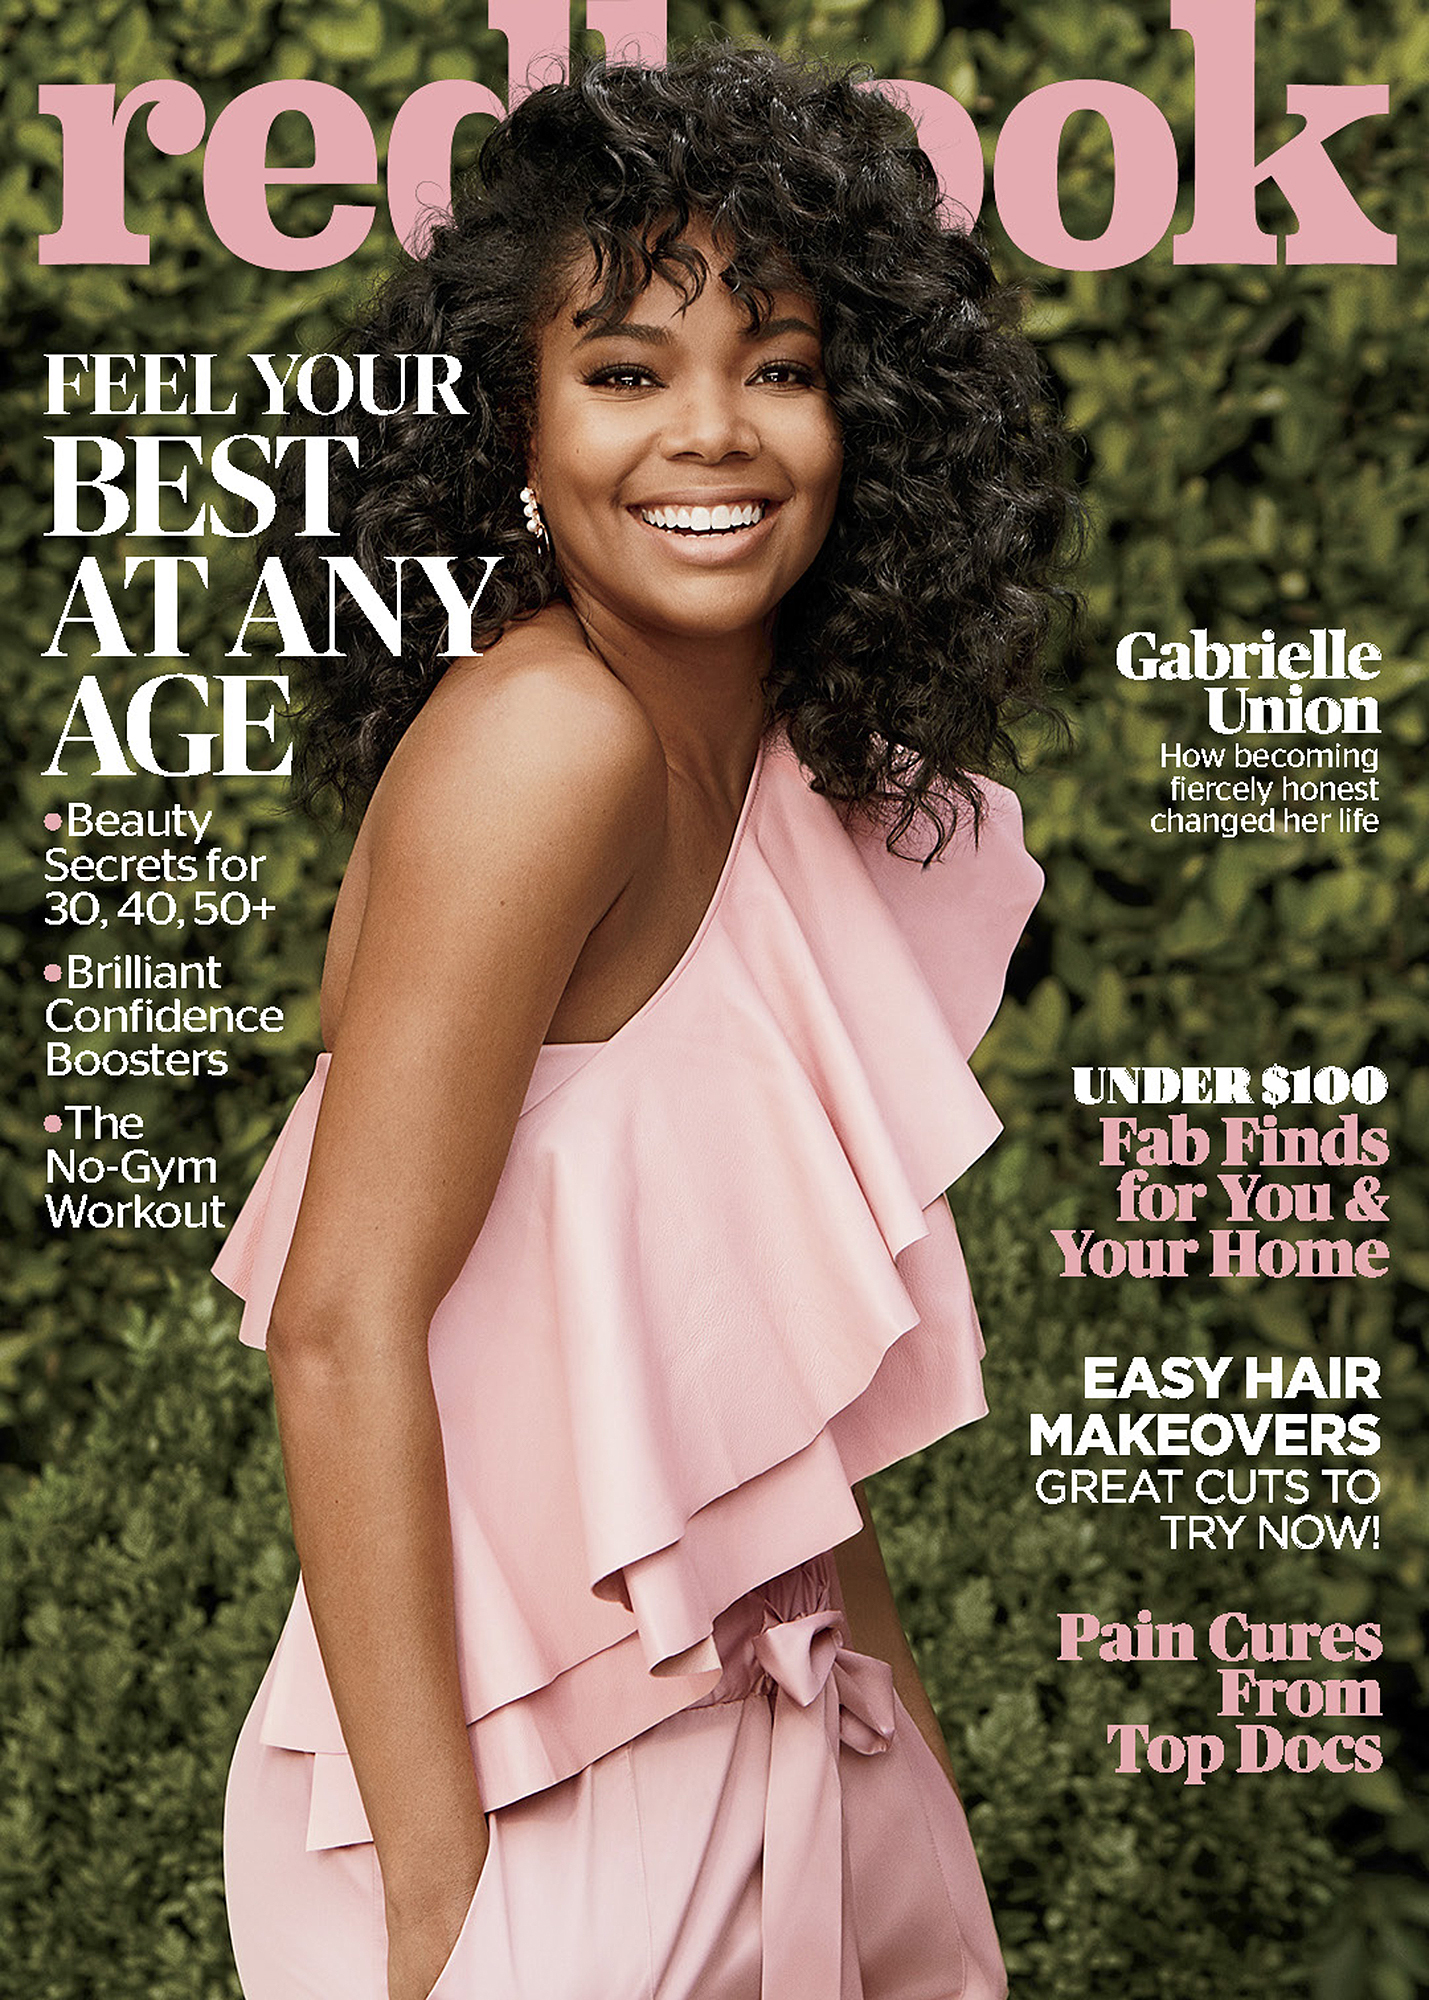 Gabrielle Union RedbookCredit: We Are the Rhoads